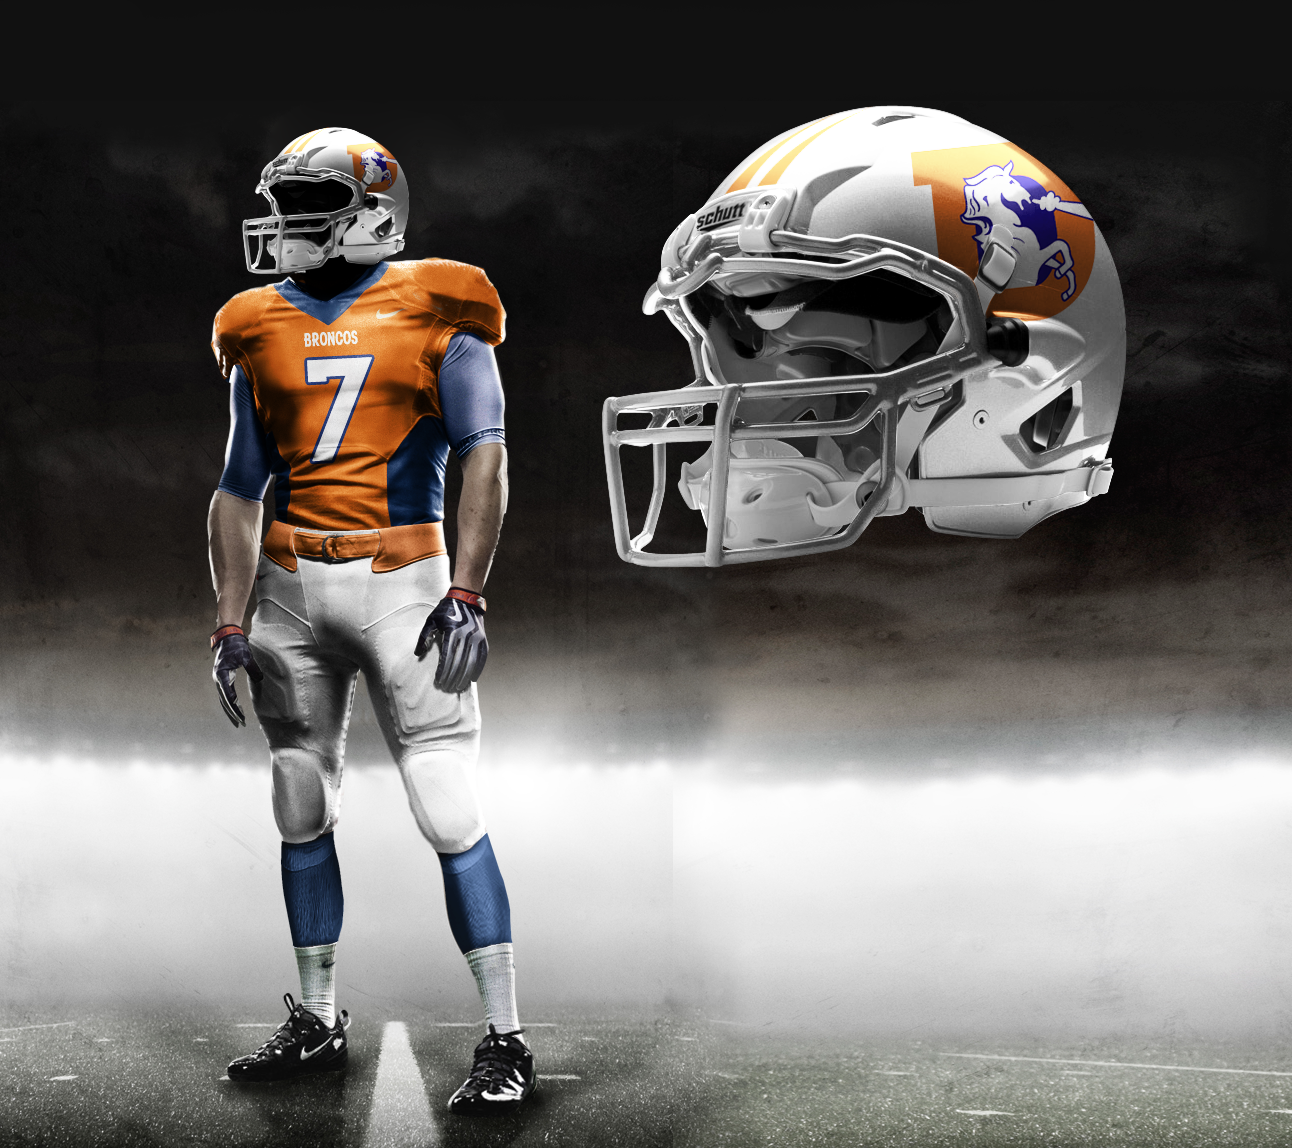 posting a photo of what the broncos uniform looked like